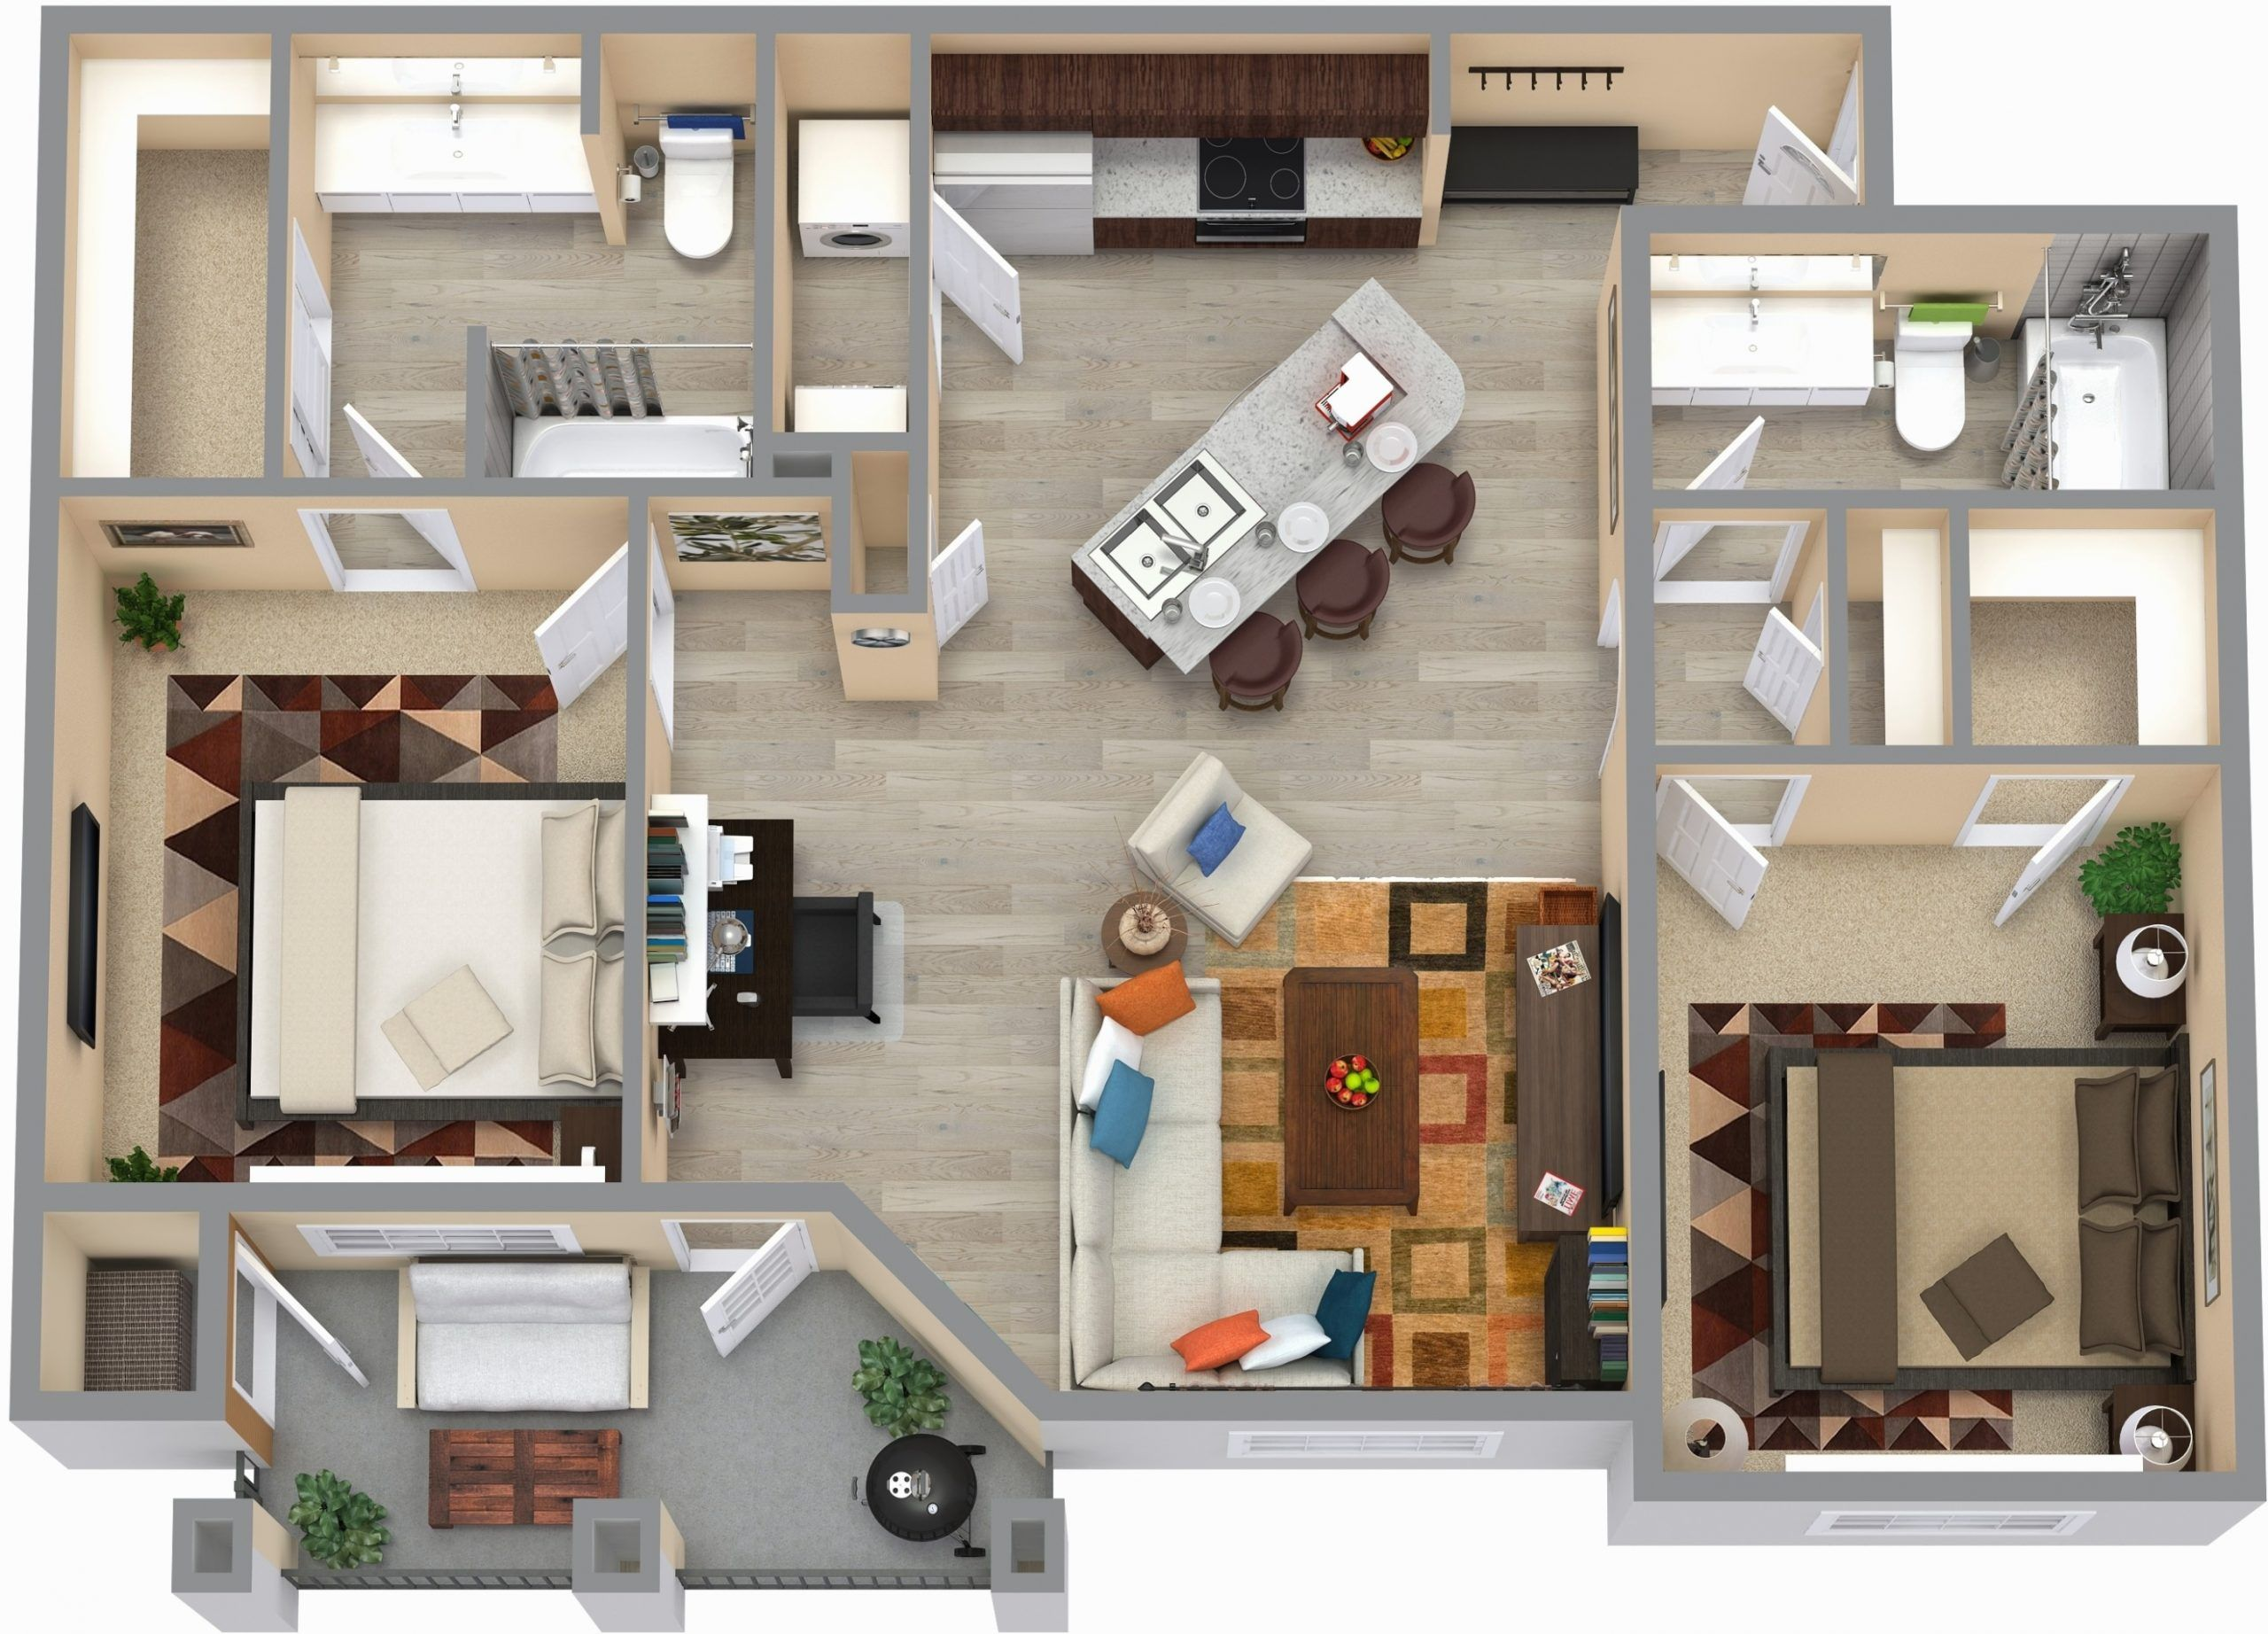 Seven Ways On How To Prepare For 8 Bedroom 8 Bathroom Apartments In 2020 Home Lottery Campus Apartment Student House